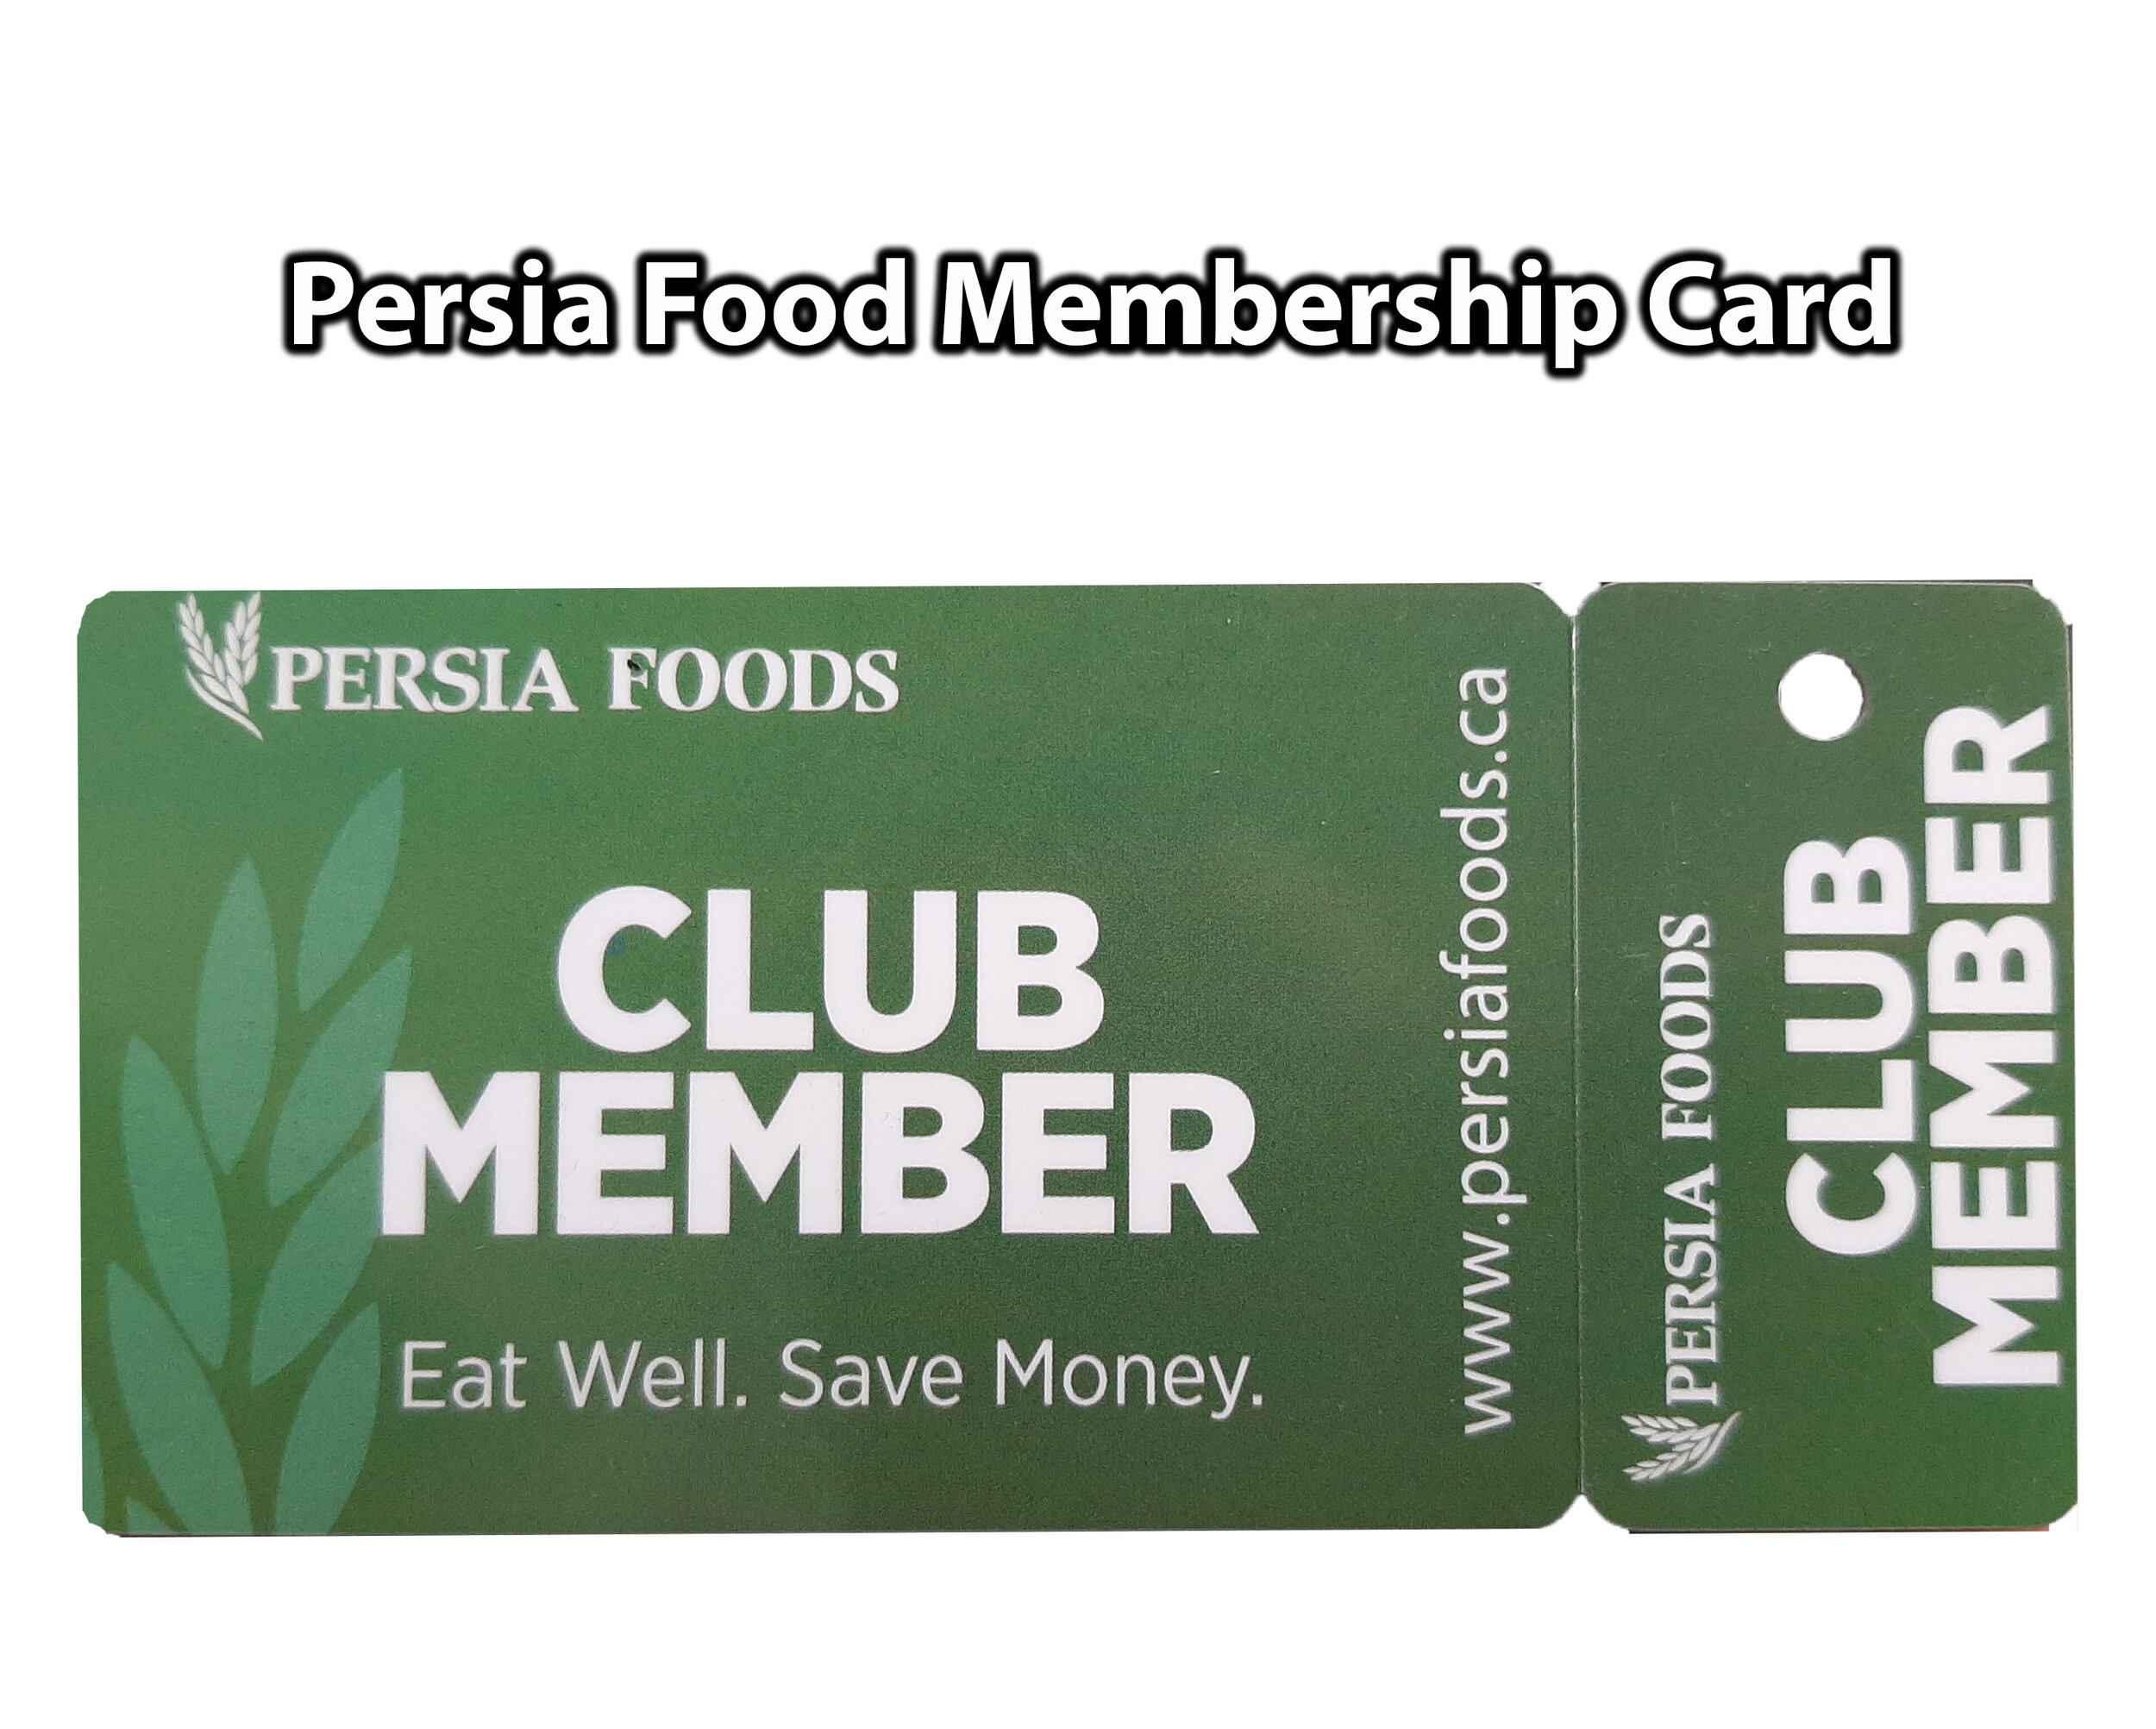 What is Purchase Point? How can I spend it? - What is Purchase Points and how can I spend it?use Persia Foods Membership Card then get points with each purchase.So, you get $ 1 points for every $ 100 you buy, eventually, you can spend your points to buy from our store by collecting points at the end of the Iranian year.At the end of the Iranian year in Eid Nowruz or Eid Norooz (Nowruz is the Iranian New Year), the points will be spent by customers in our store.